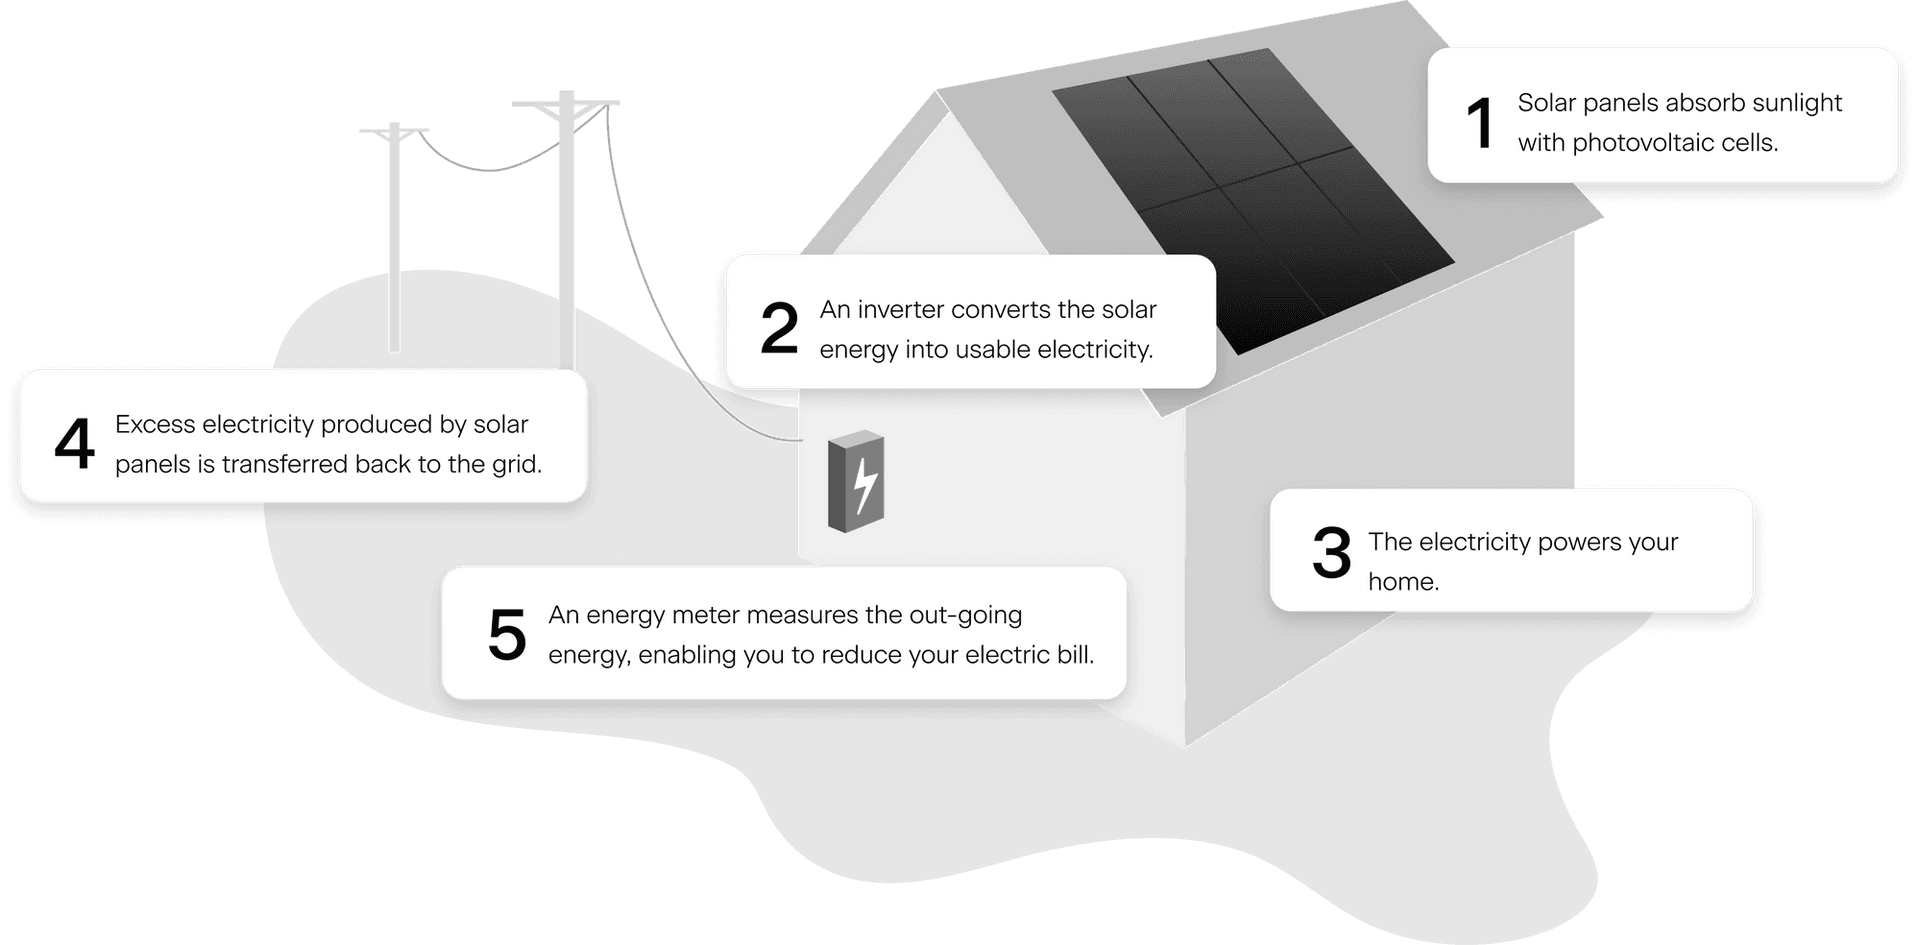 Solar panels - how do they work